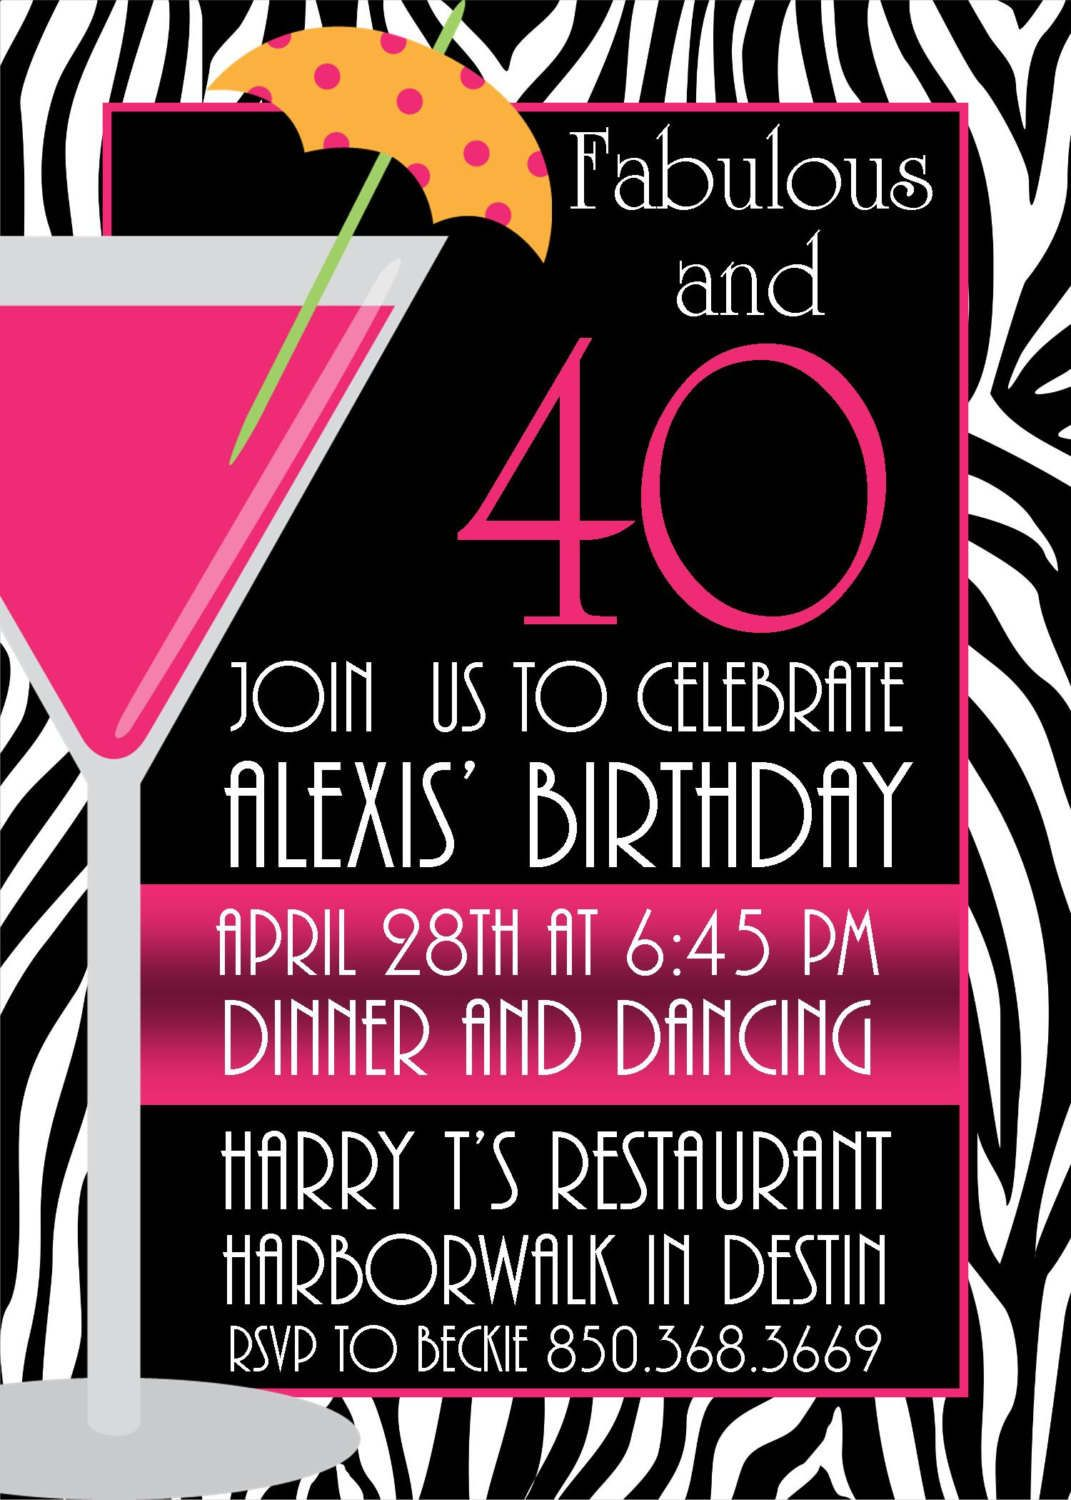 pictures of stylish women for th birthday invitation  free, invitation samples